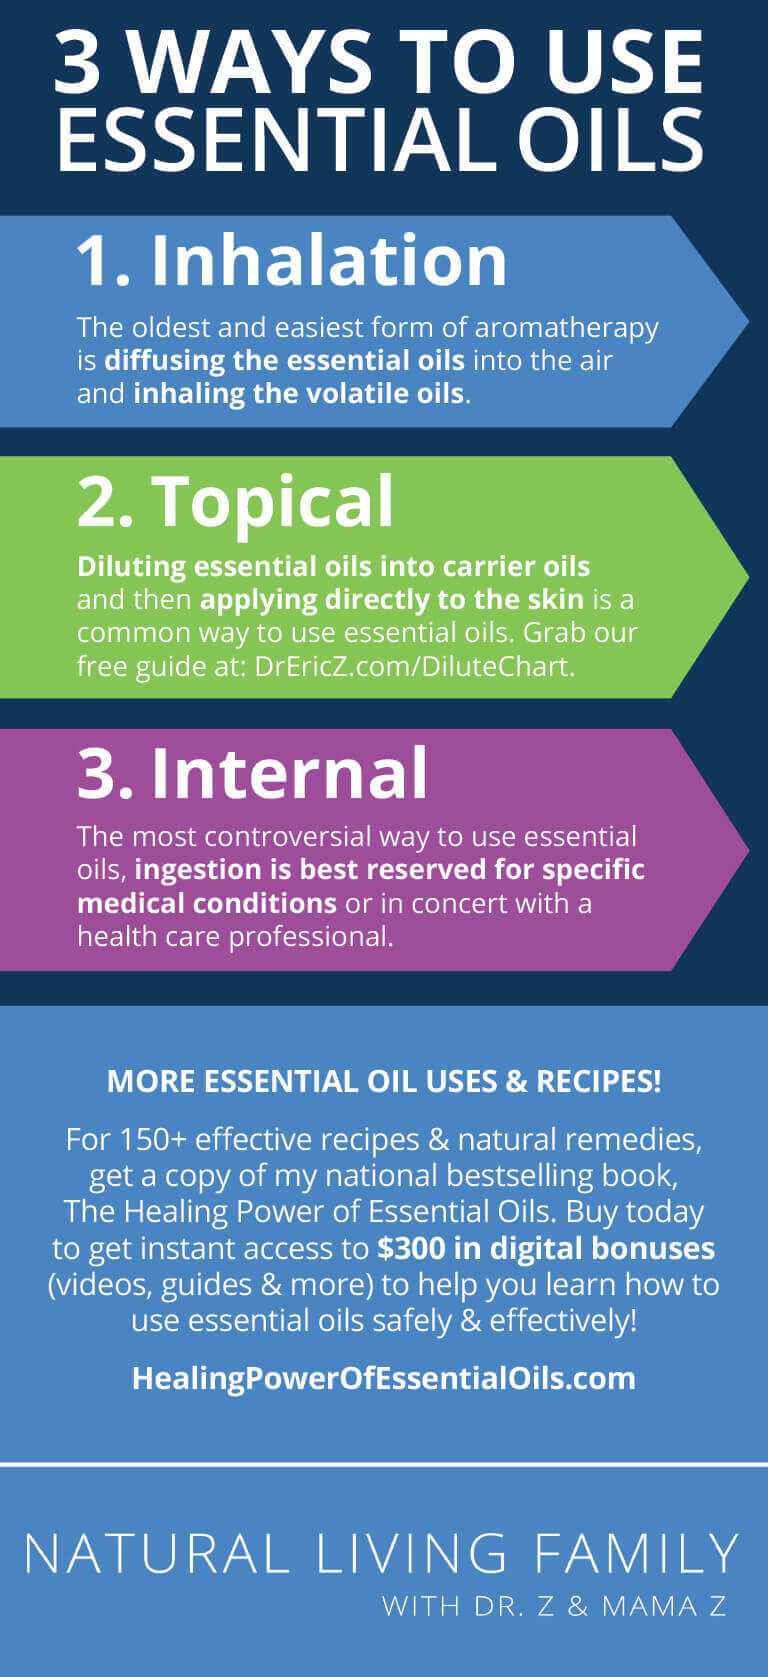 Aromatherapy Essential Oils 101 - Guide to Safe and Effective Use